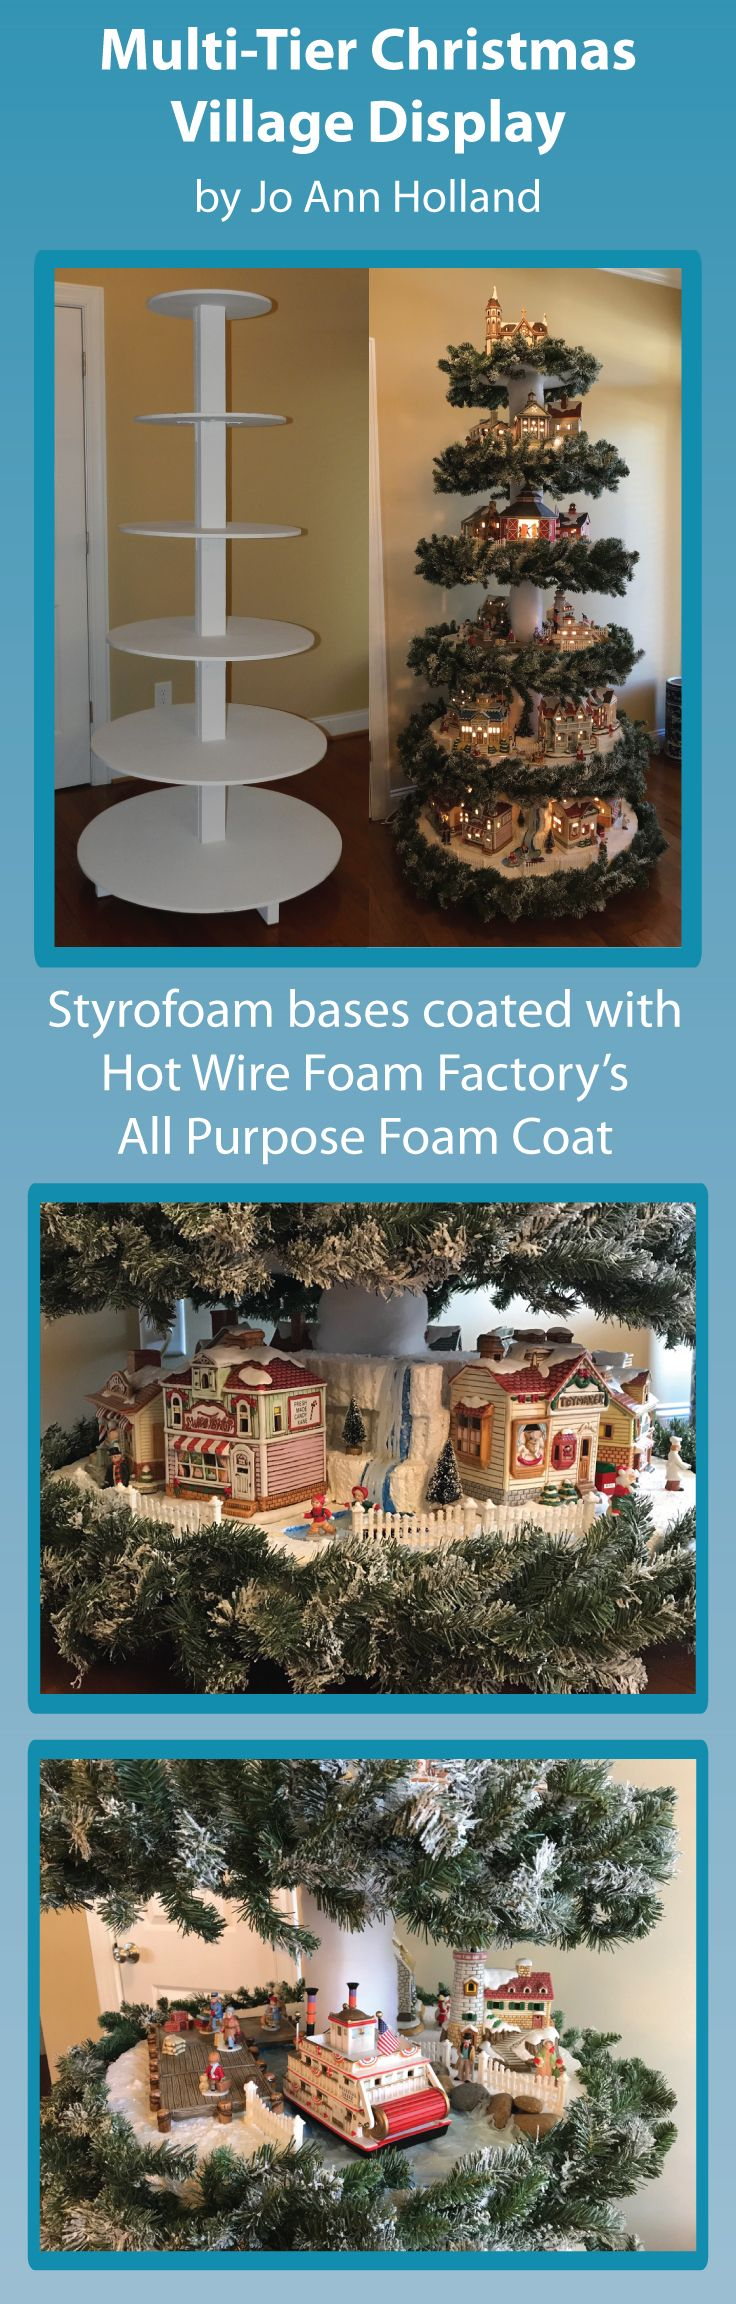 Xmas Village Display Ideas (with Pictures) | paramountgolfforeste.info